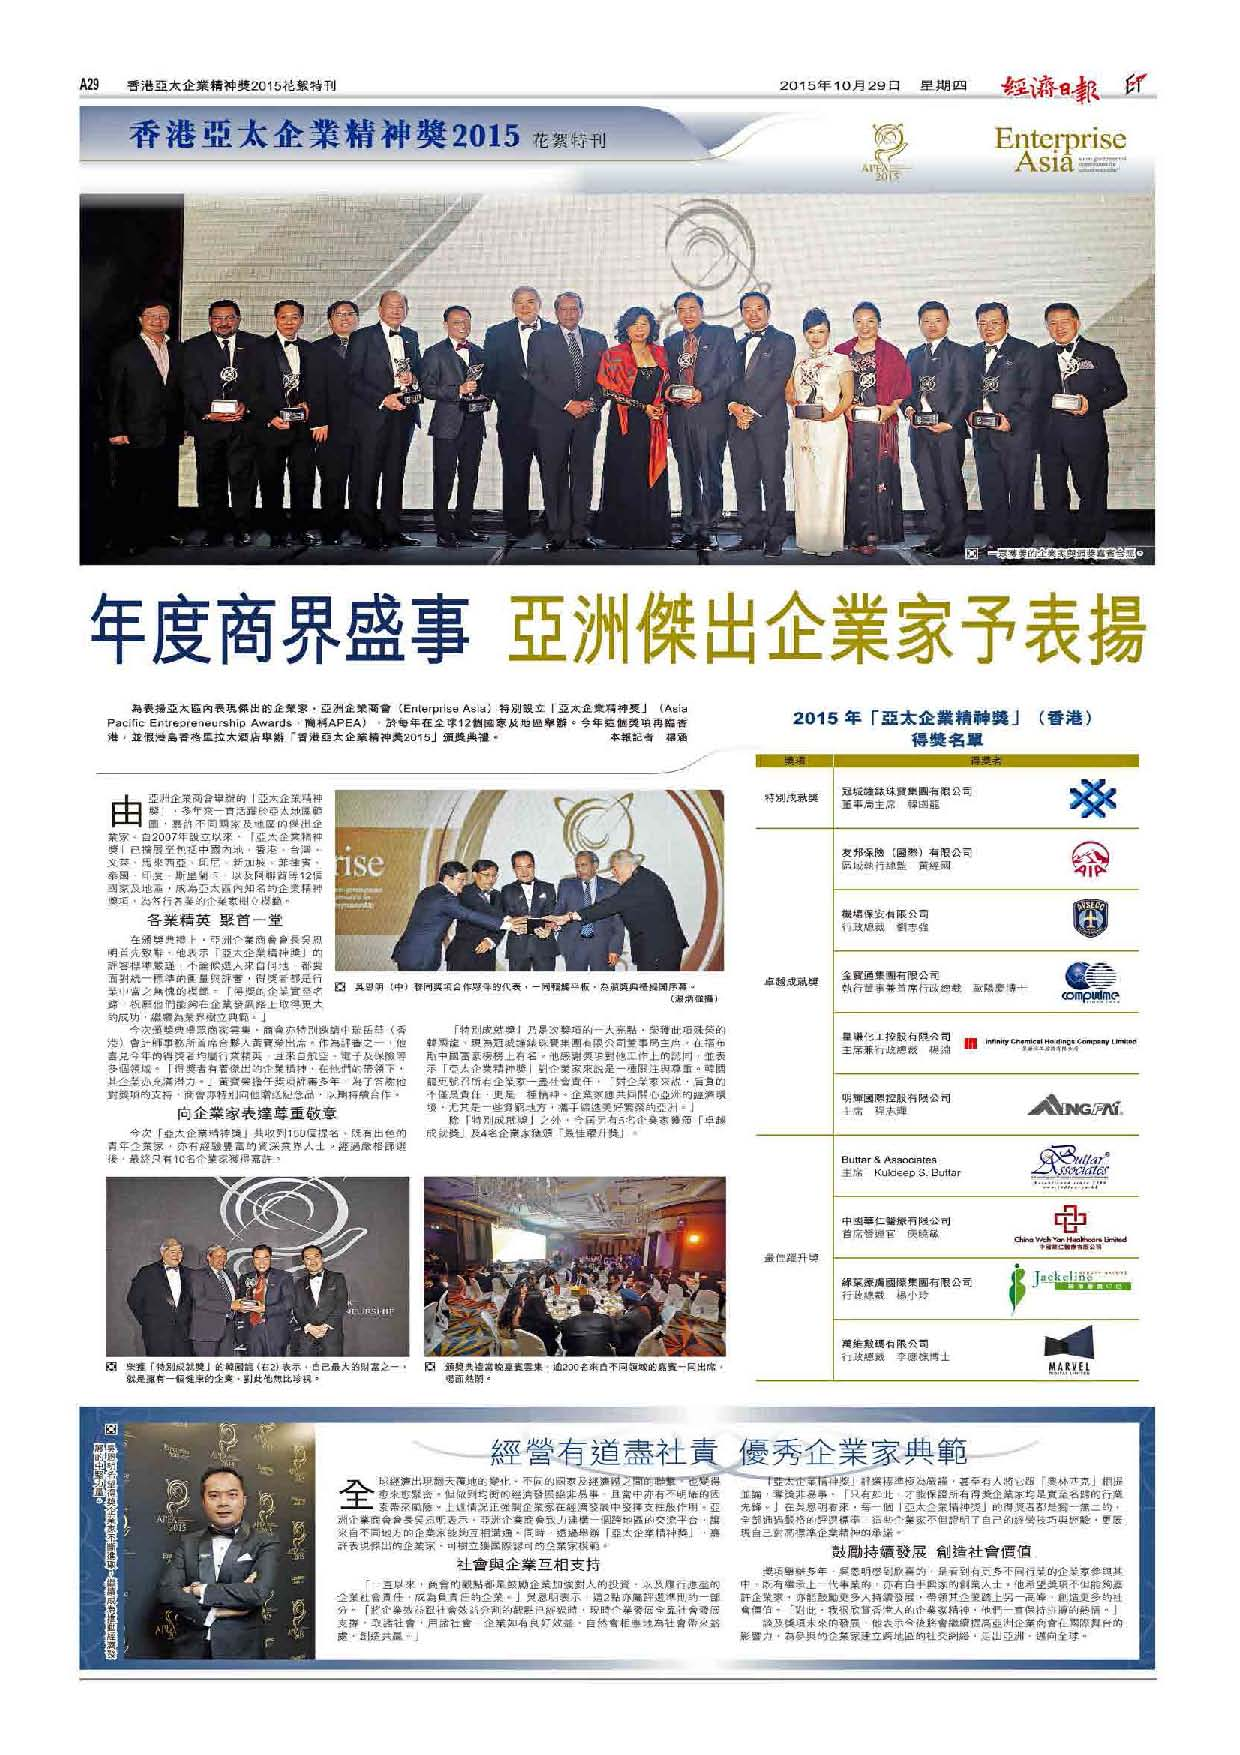 APEA 2015 HK_HKET Supplement_29Oct2015_lowres_頁面_1